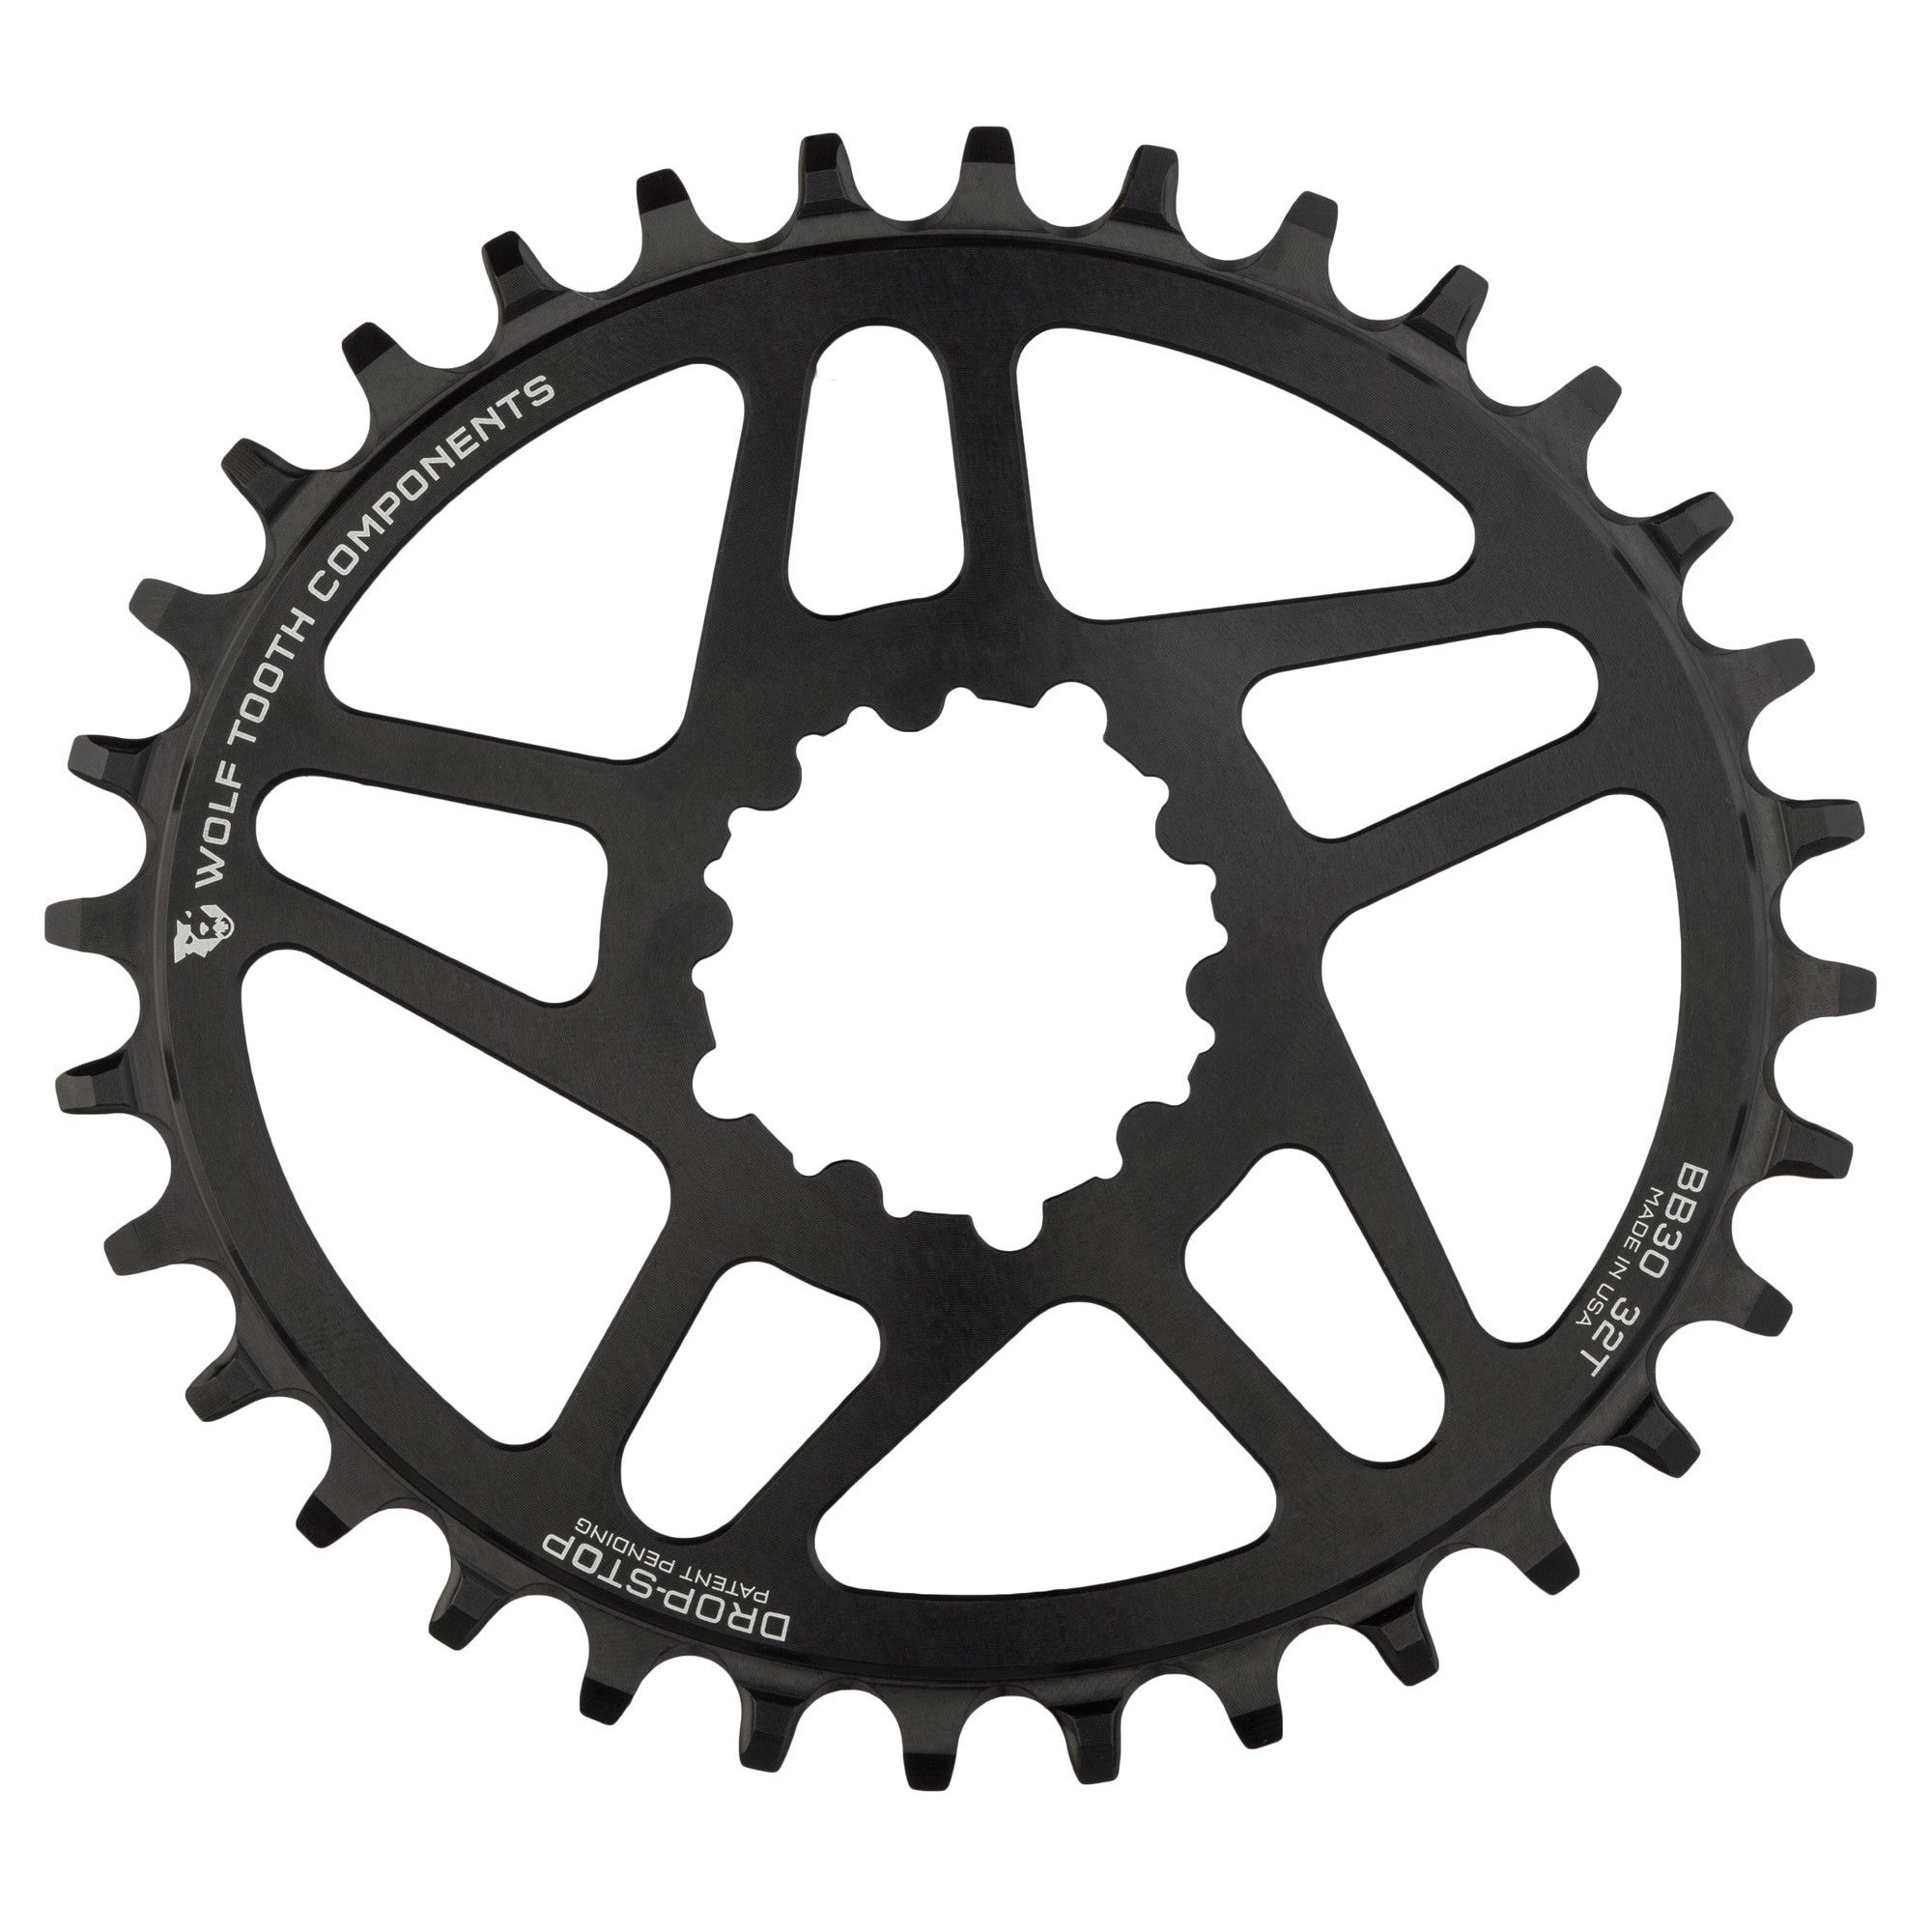 Wolf Tooth Components Elliptical Chainring 32t SRAM Direct Mount GXP 6mm Offset for sale online